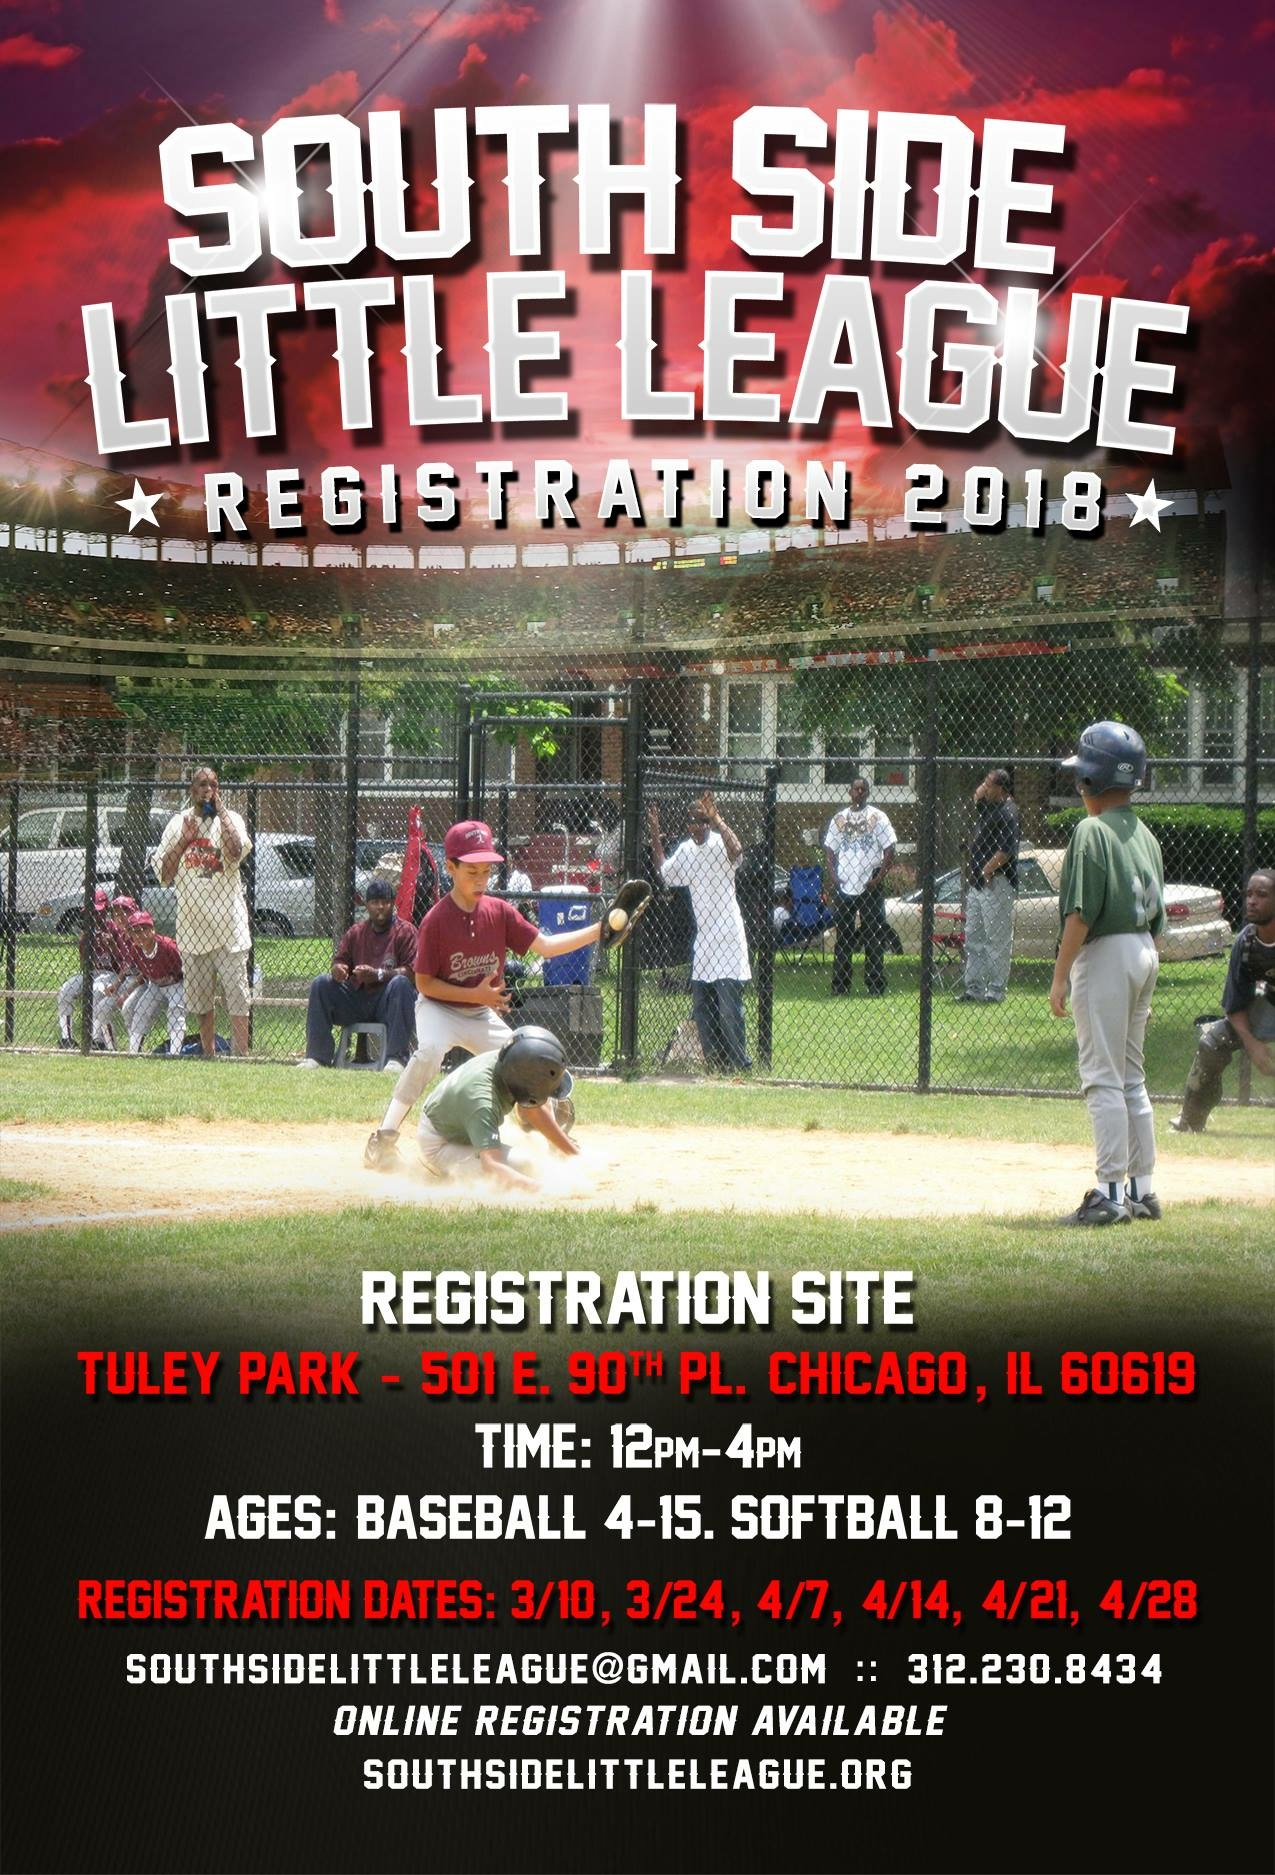 South Side Little League